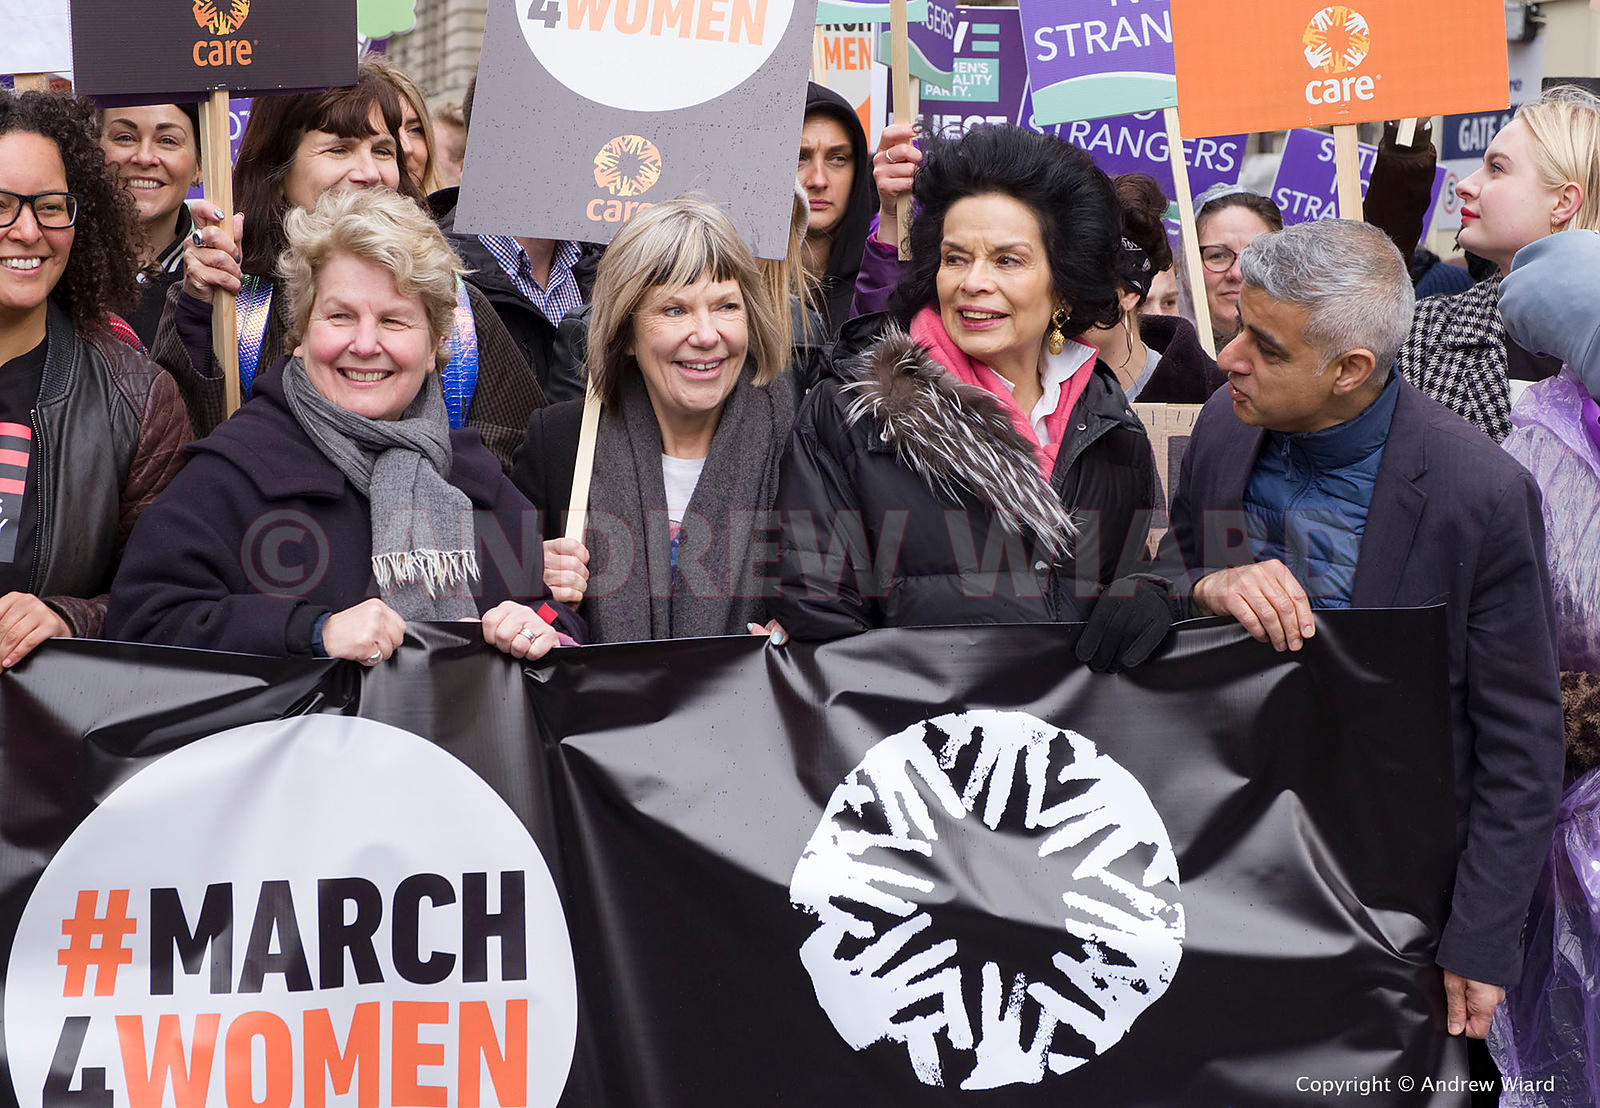 England, UK 8.3.2020. London. International Women's Day. March4Women. Copyright © 2020 Andrew Wiard.